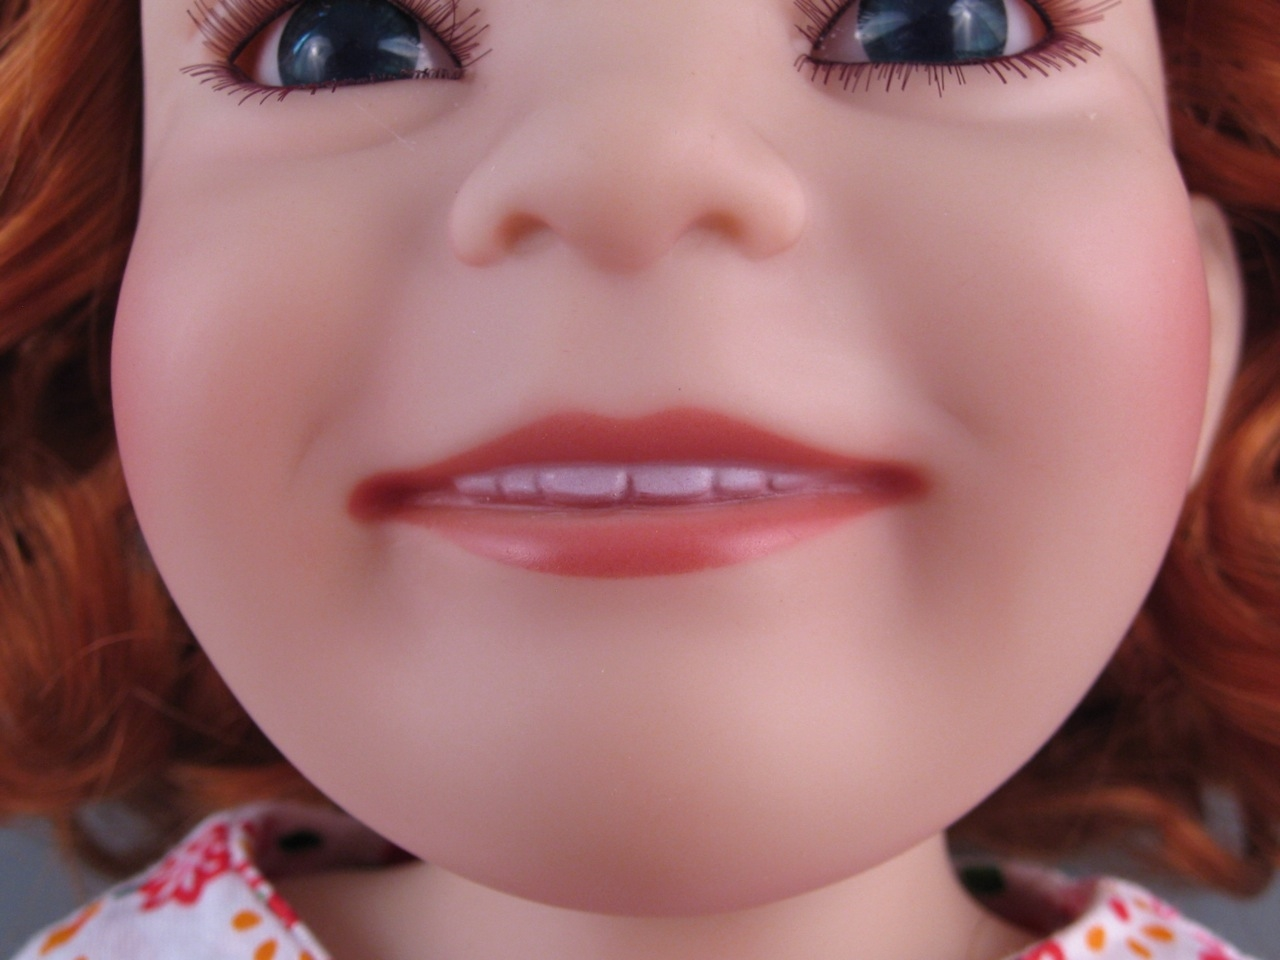 I forgot to note where I stole this awesome image from. It was a review of this doll. My apologies, doll reviewer!